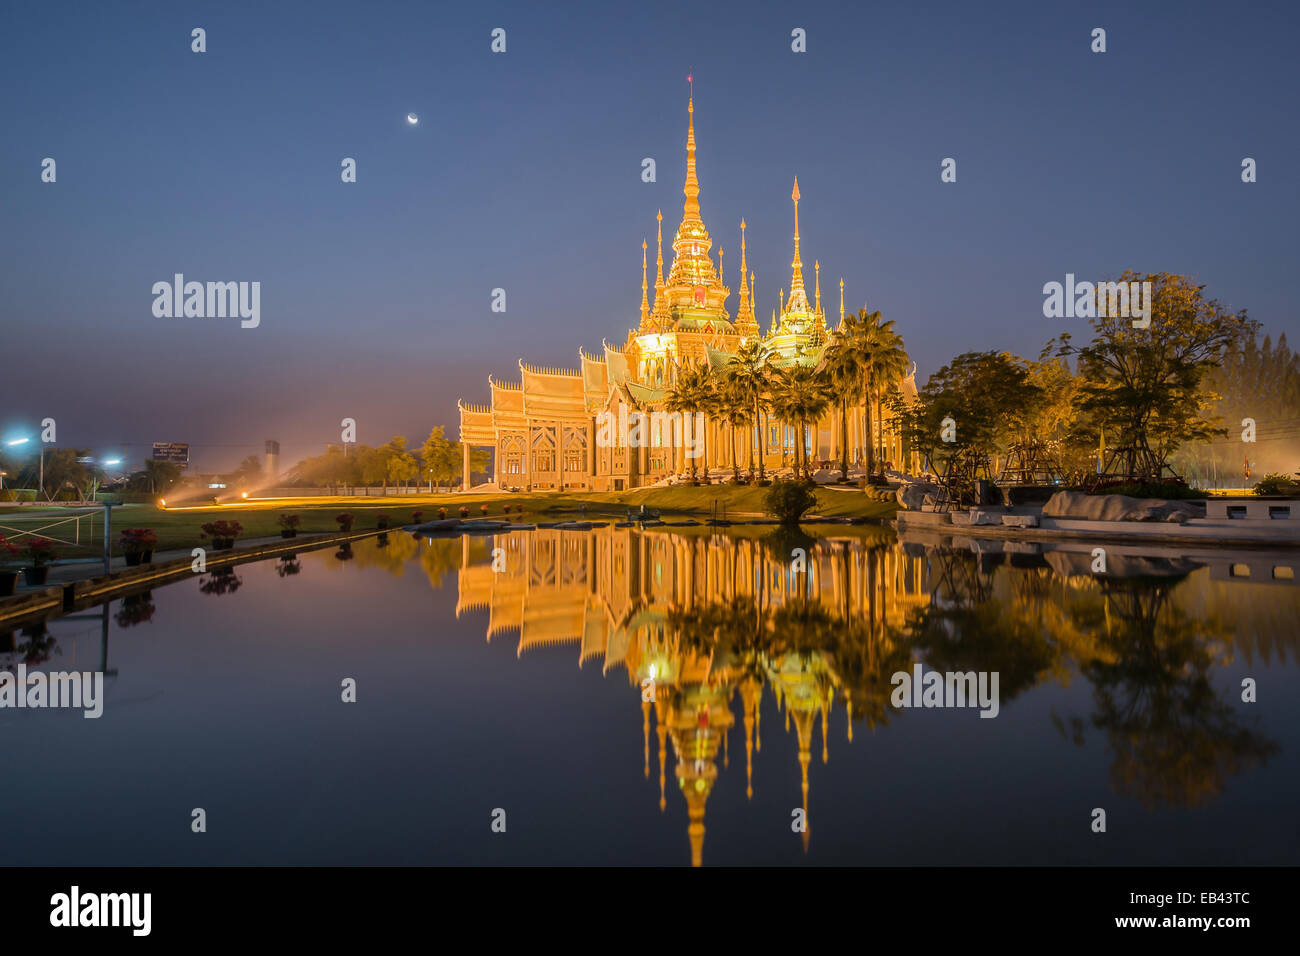 Beautiful temple with reflection in Thailand - Stock Image